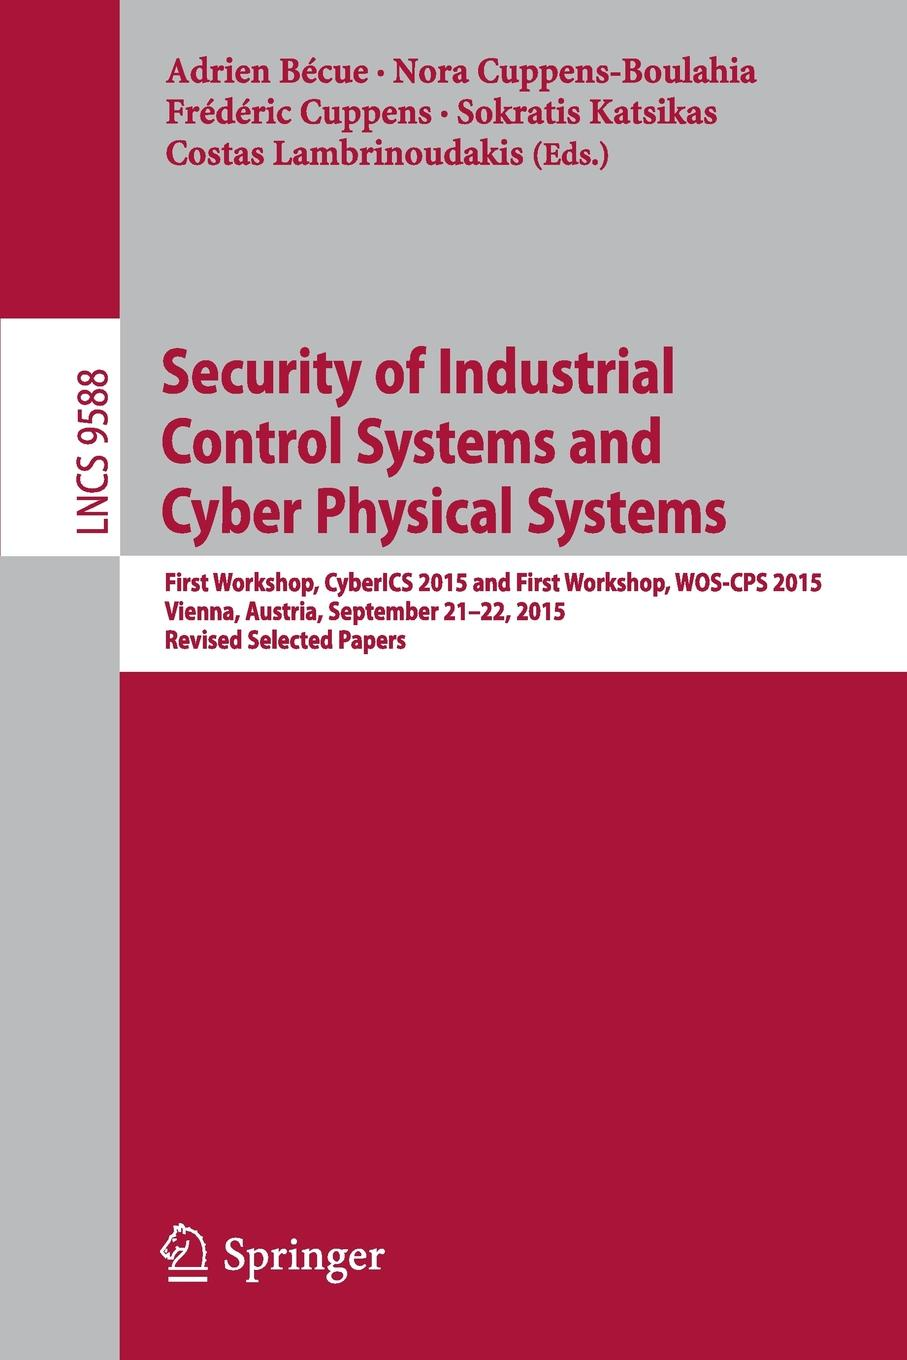 Security of Industrial Control Systems and Cyber Physical Systems. First Workshop, CyberICS 2015 and First Workshop, WOS-CPS 2015 Vienna, Austria, September 21-22, 2015 Revised Selected Papers cyber physical systems of systems foundations a conceptual model and some derivations the amadeos legacy